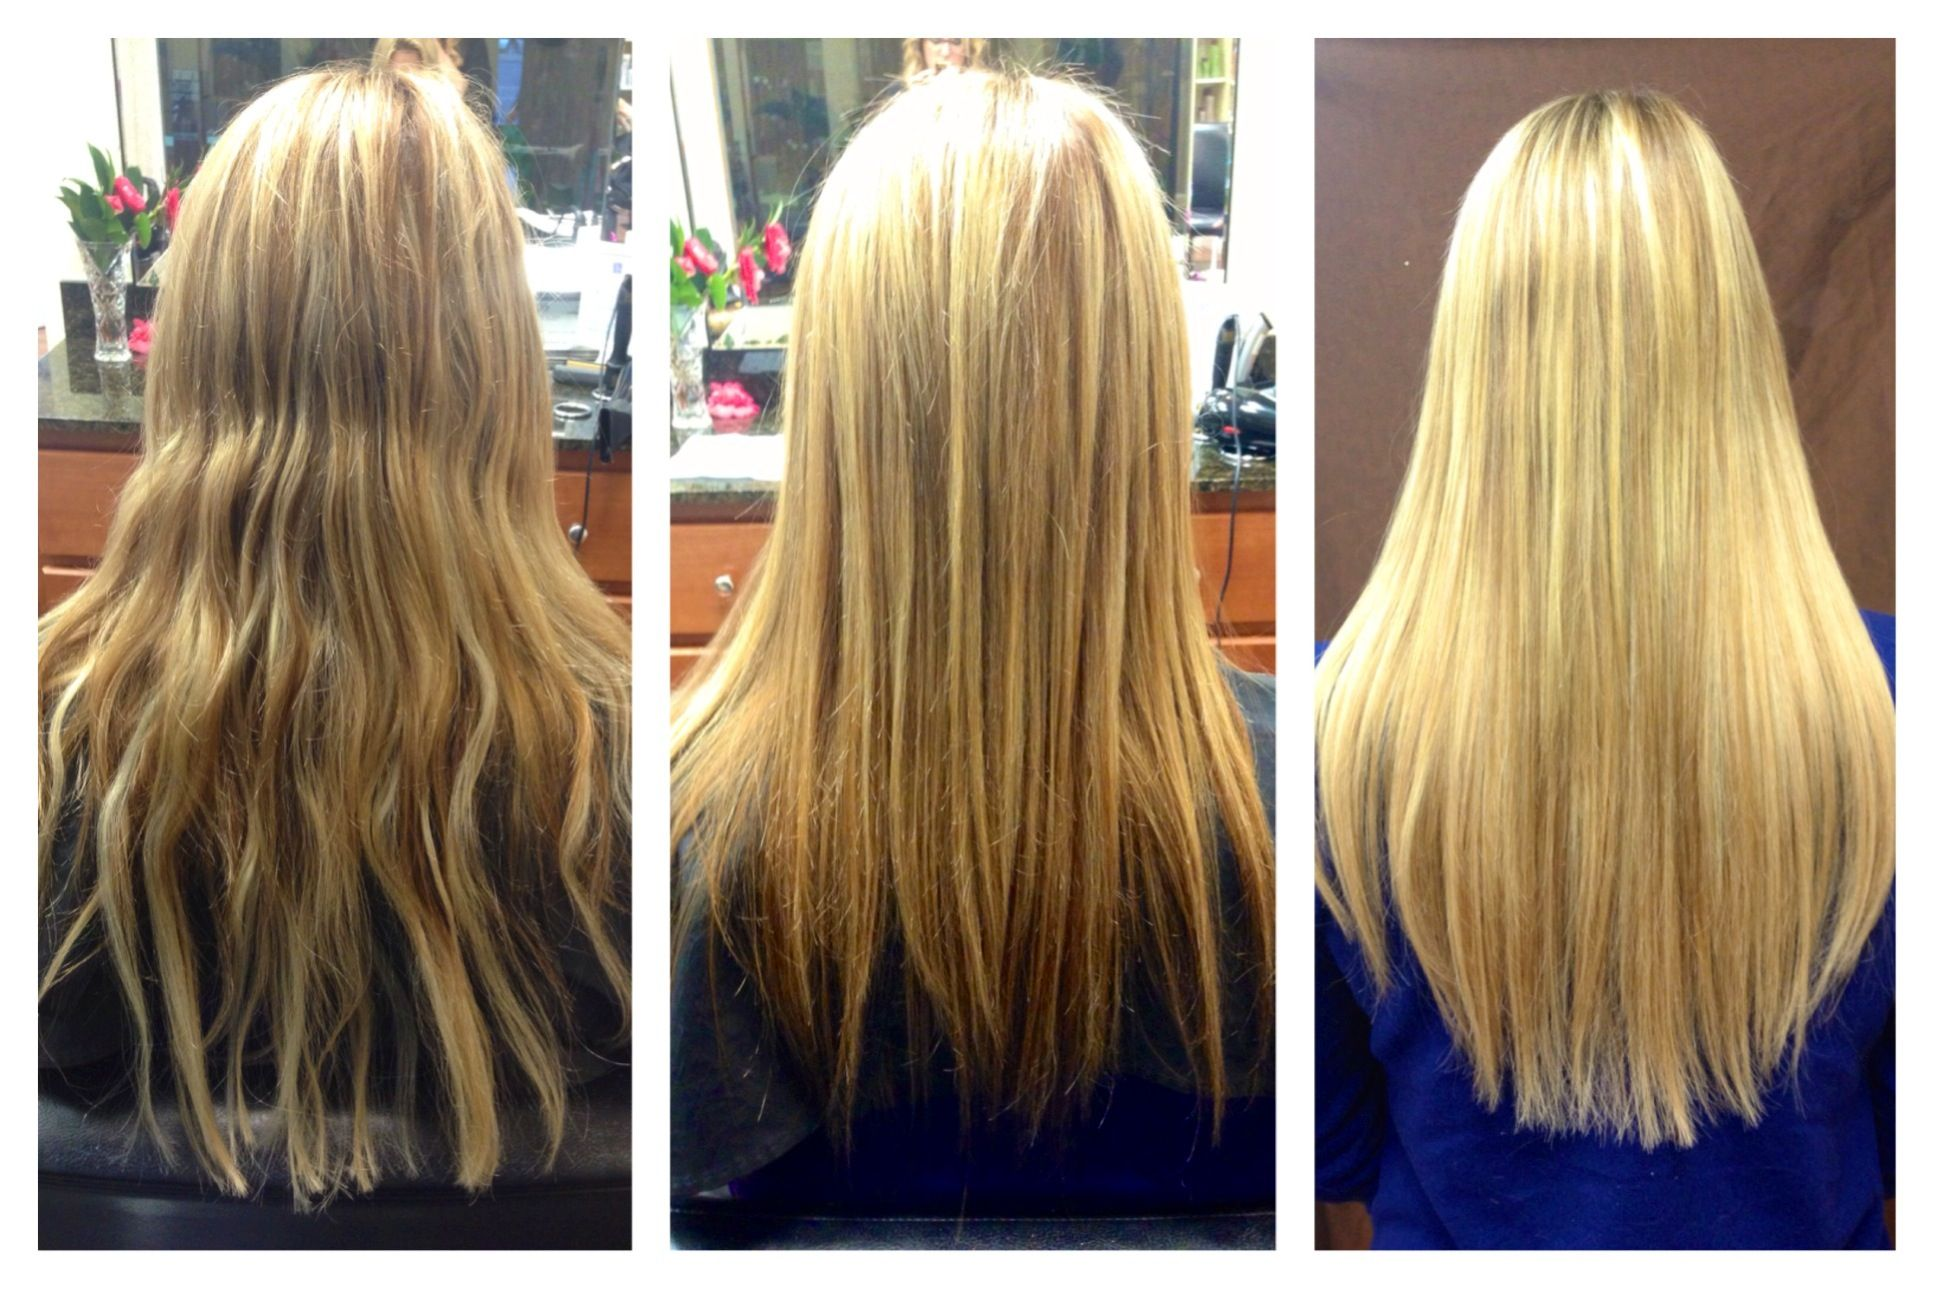 see what a difference quality extensions make before stringy